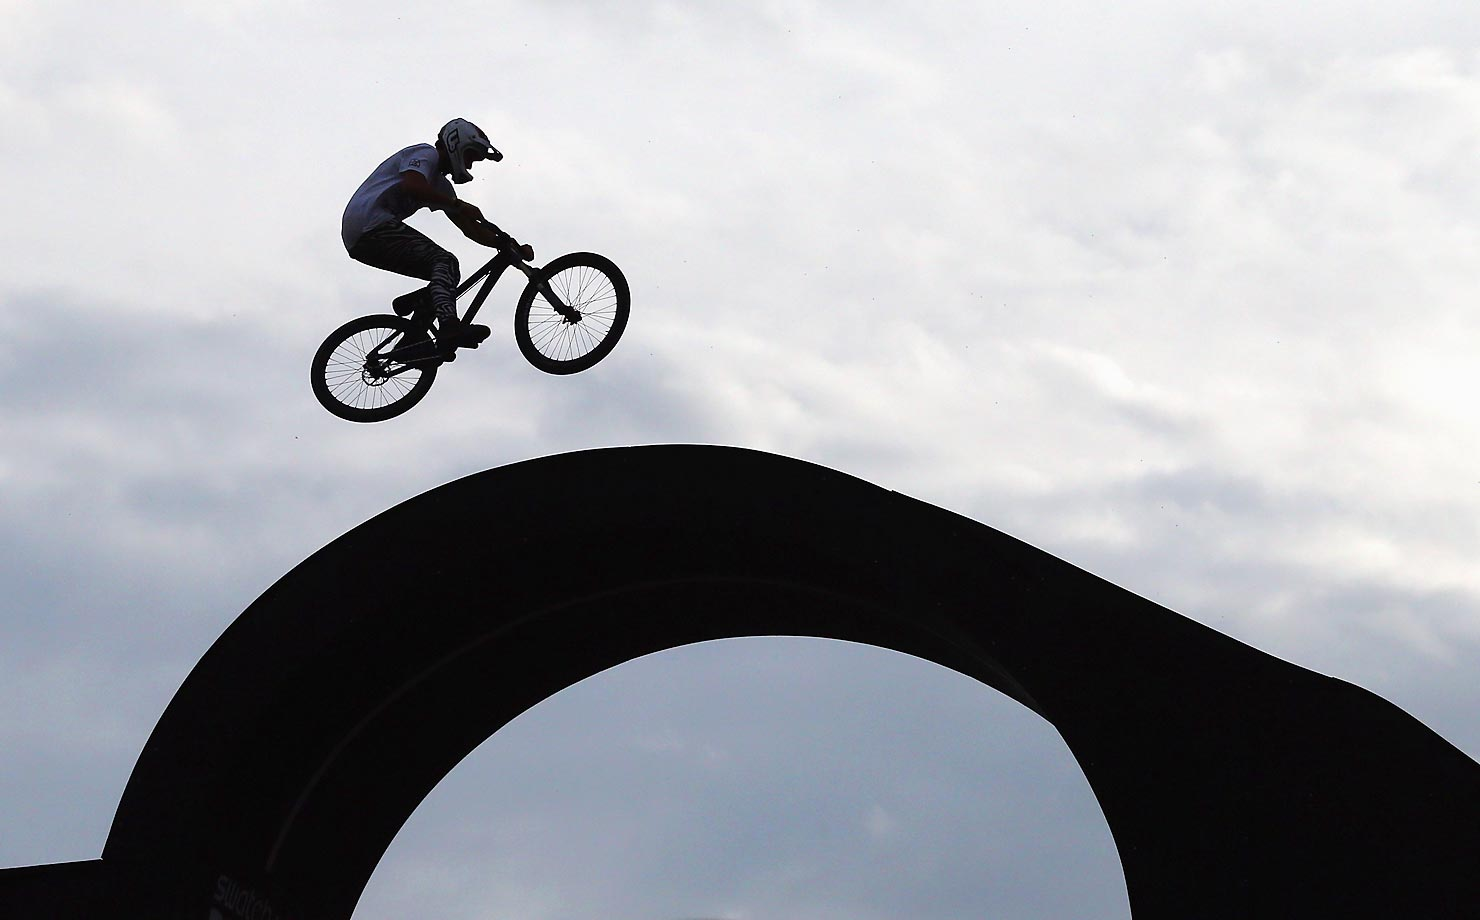 Thomas Lemoine of France rides the BMX Street Rink at the Swatch Prime Line Mountainbike finale at Munich Olympic Park.